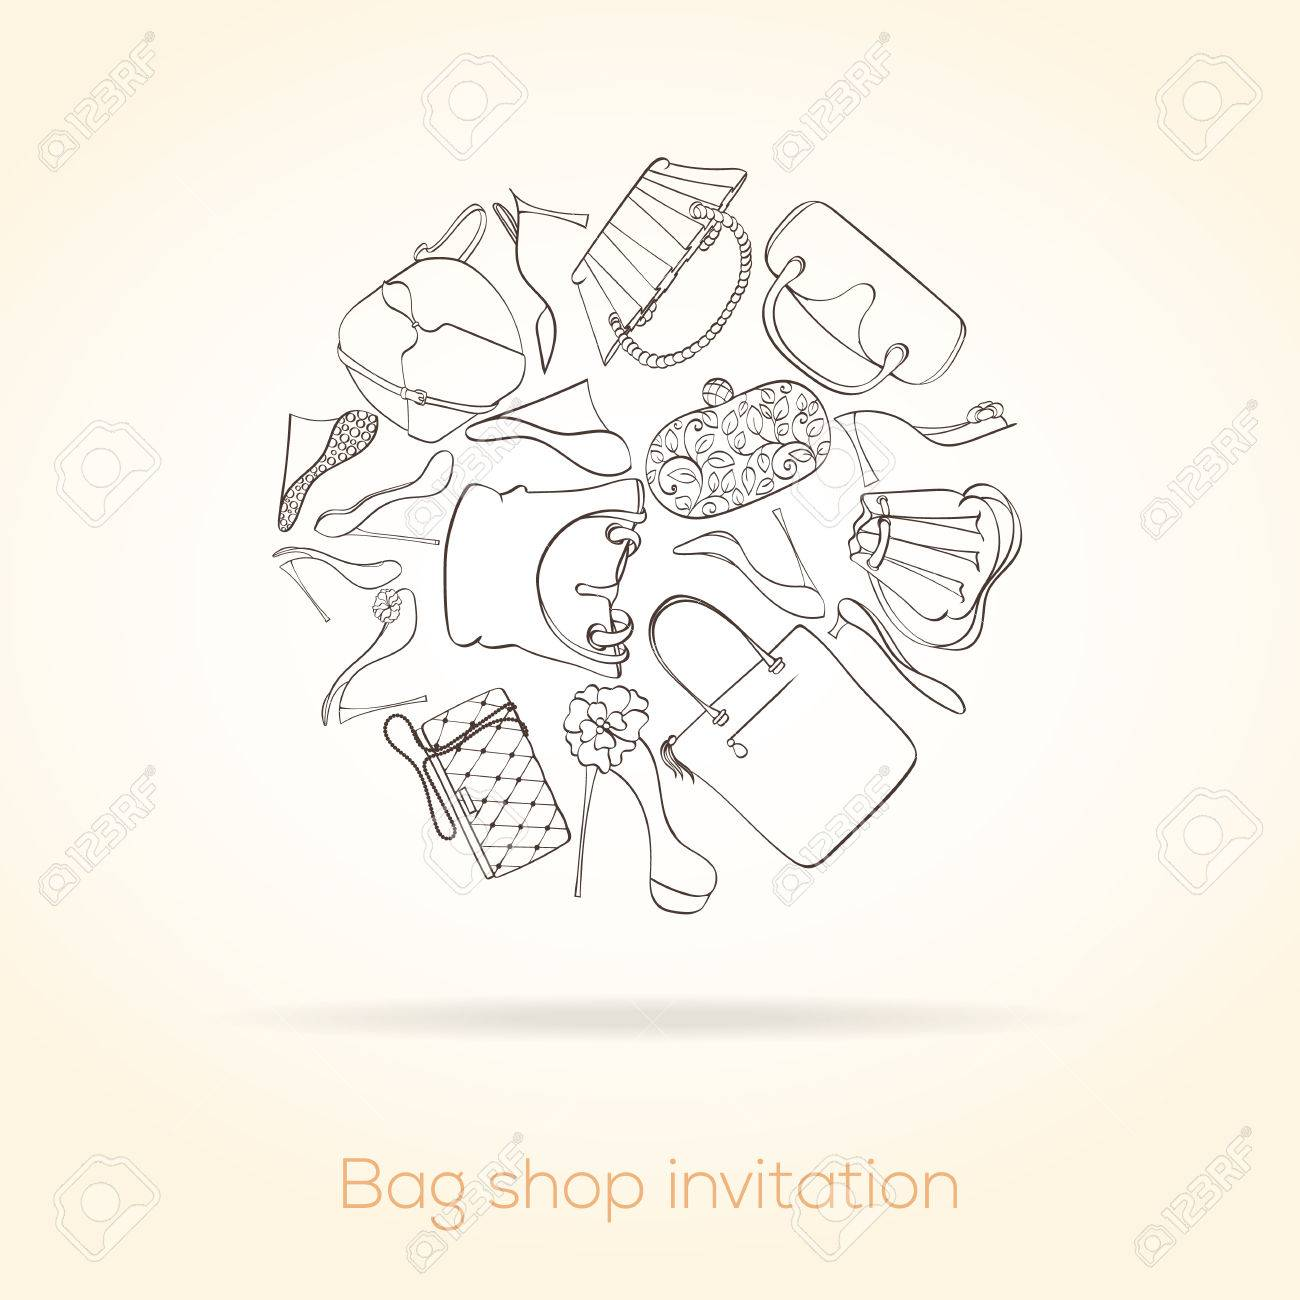 Invitation Card For Women Bag Shop Card Can Be Used For Holiday